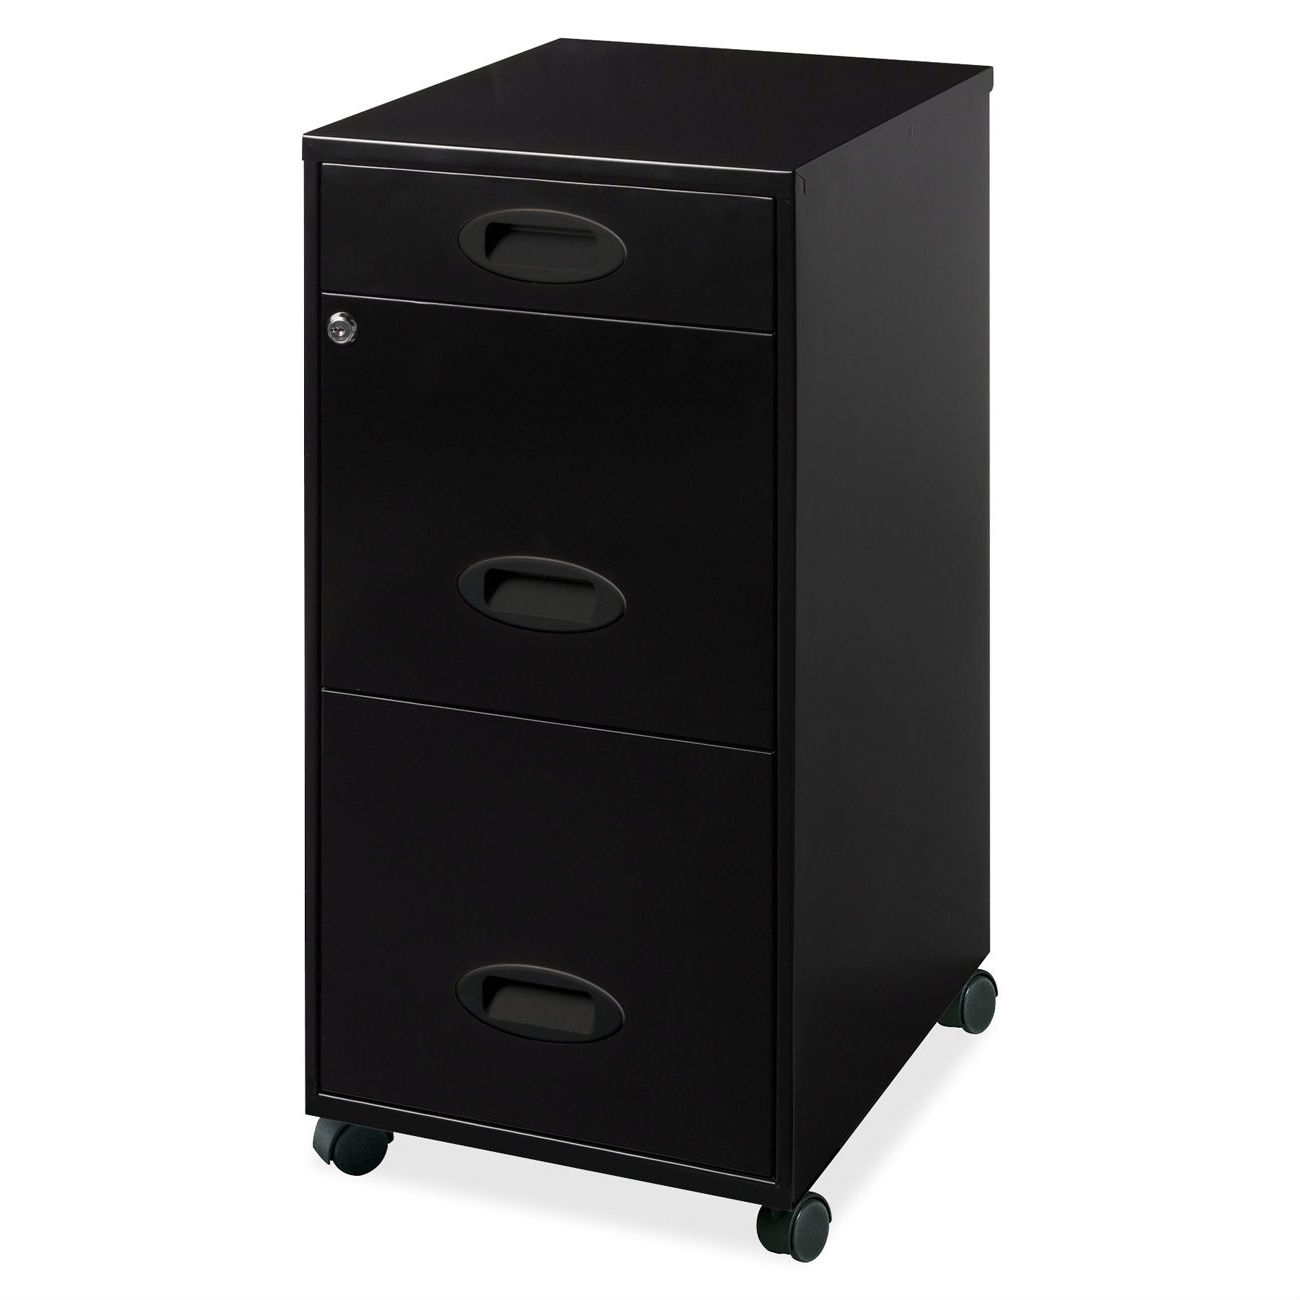 Black 3 Drawer Vertical File Cabinet With Mobile Rolling Casters